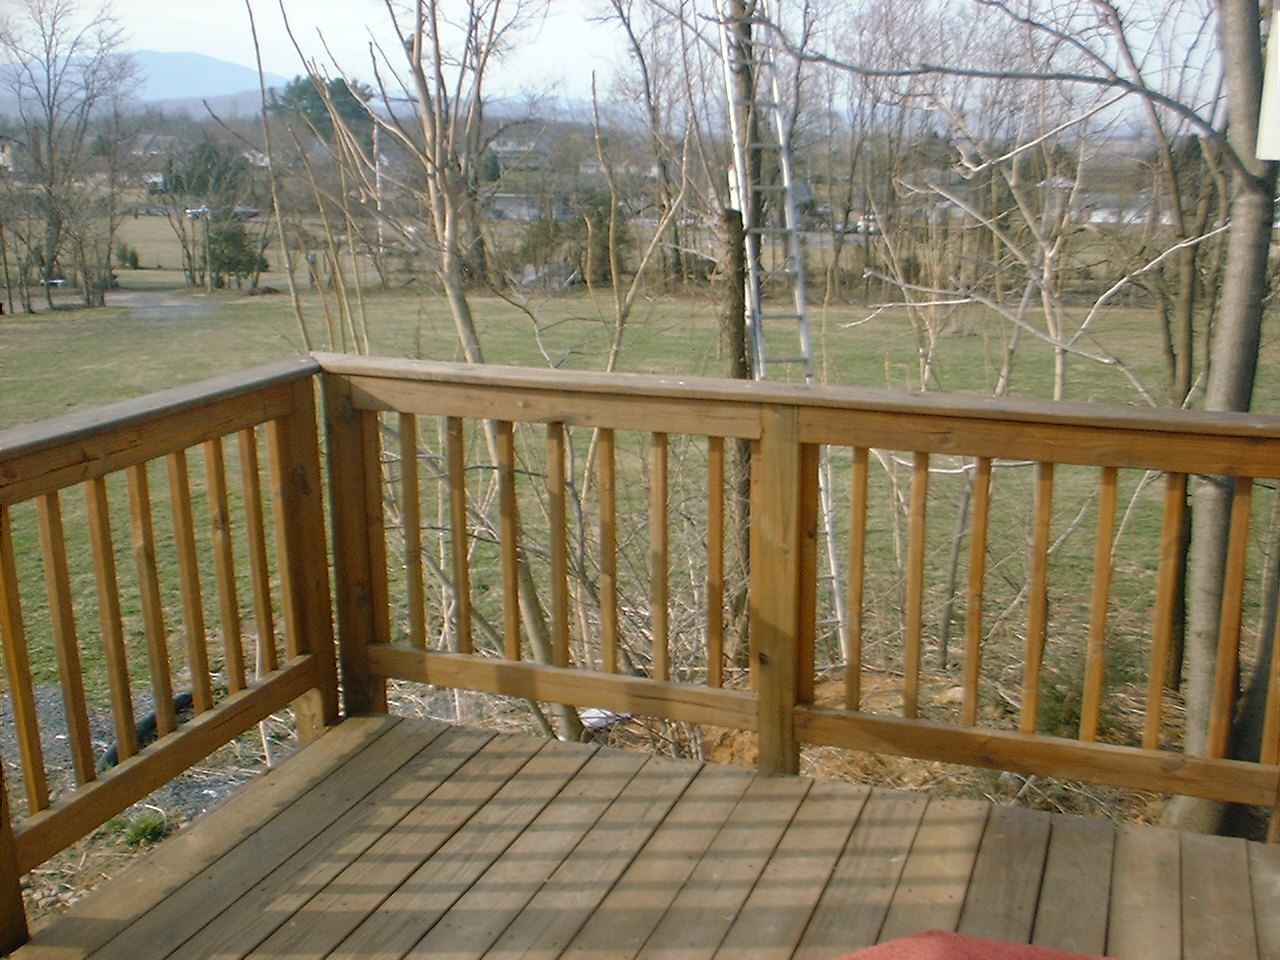 Deck overlooking Blue Ridge - Skyline Drive